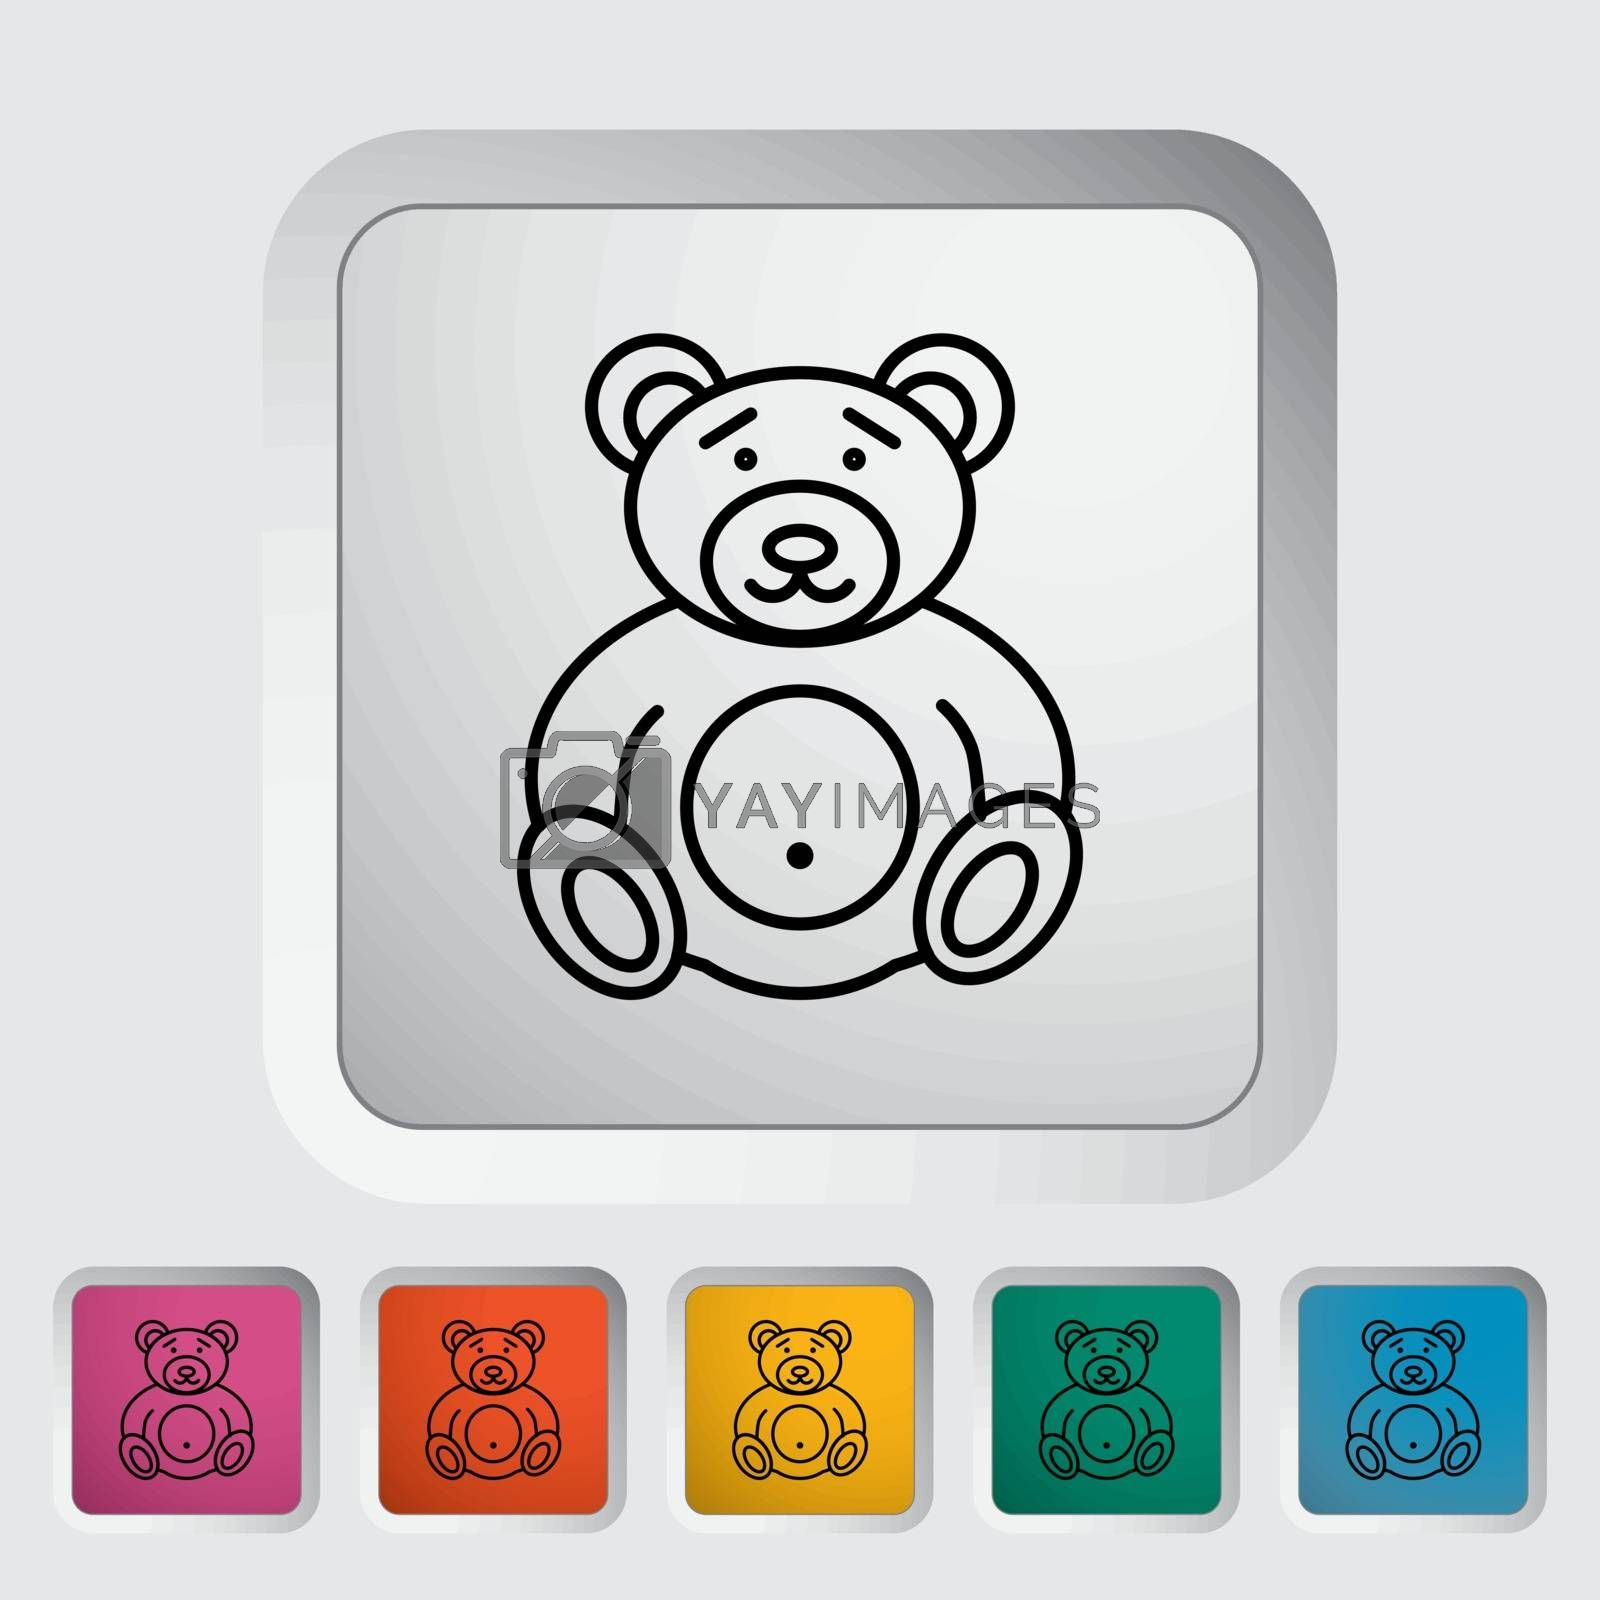 Bear toy thin line flat vector related icon set for web and mobile applications. It can be used as - pictogram, icon, infographic element. Vector Illustration.